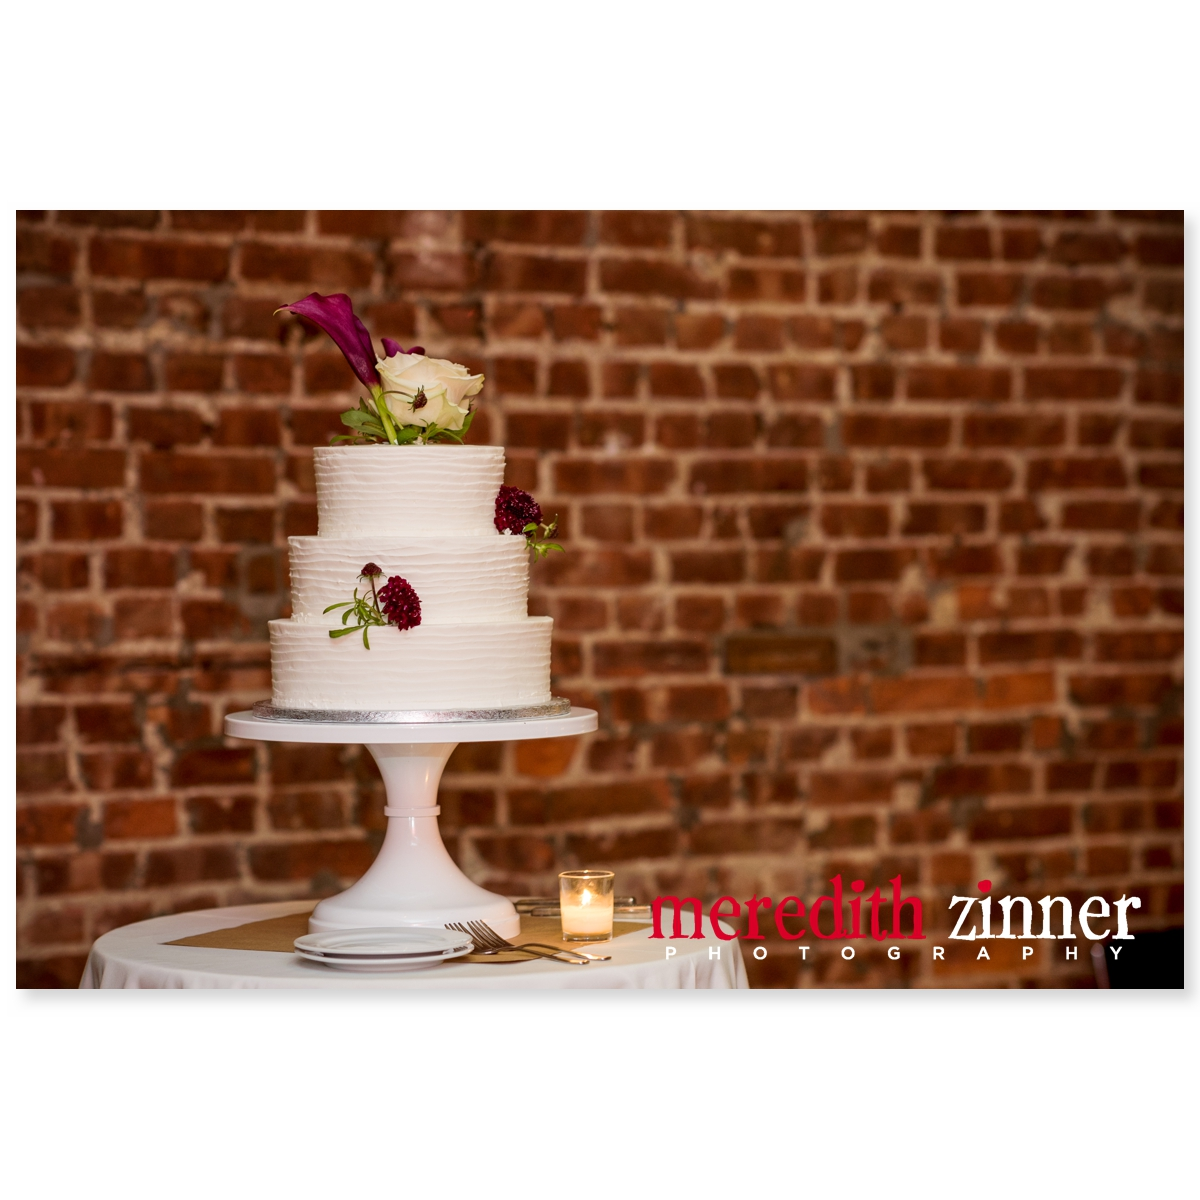 Meredith_Zinner_Photography_StilesCelebration_0286